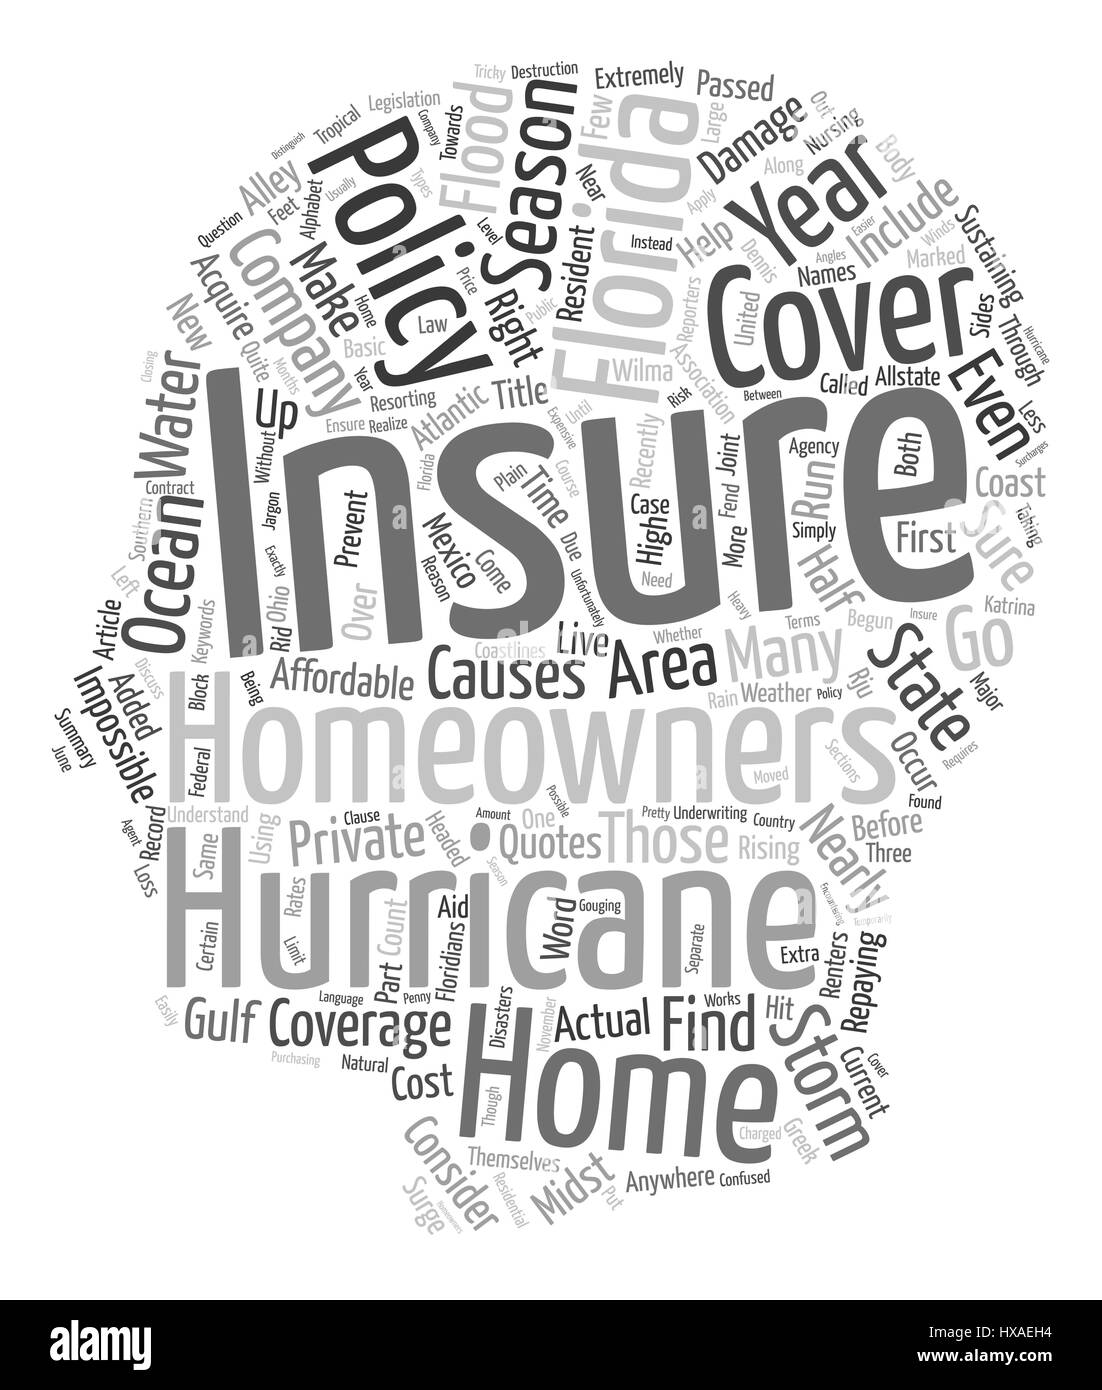 Florida Homeowners Insurance Coverage text background wordcloud concept - Stock Image